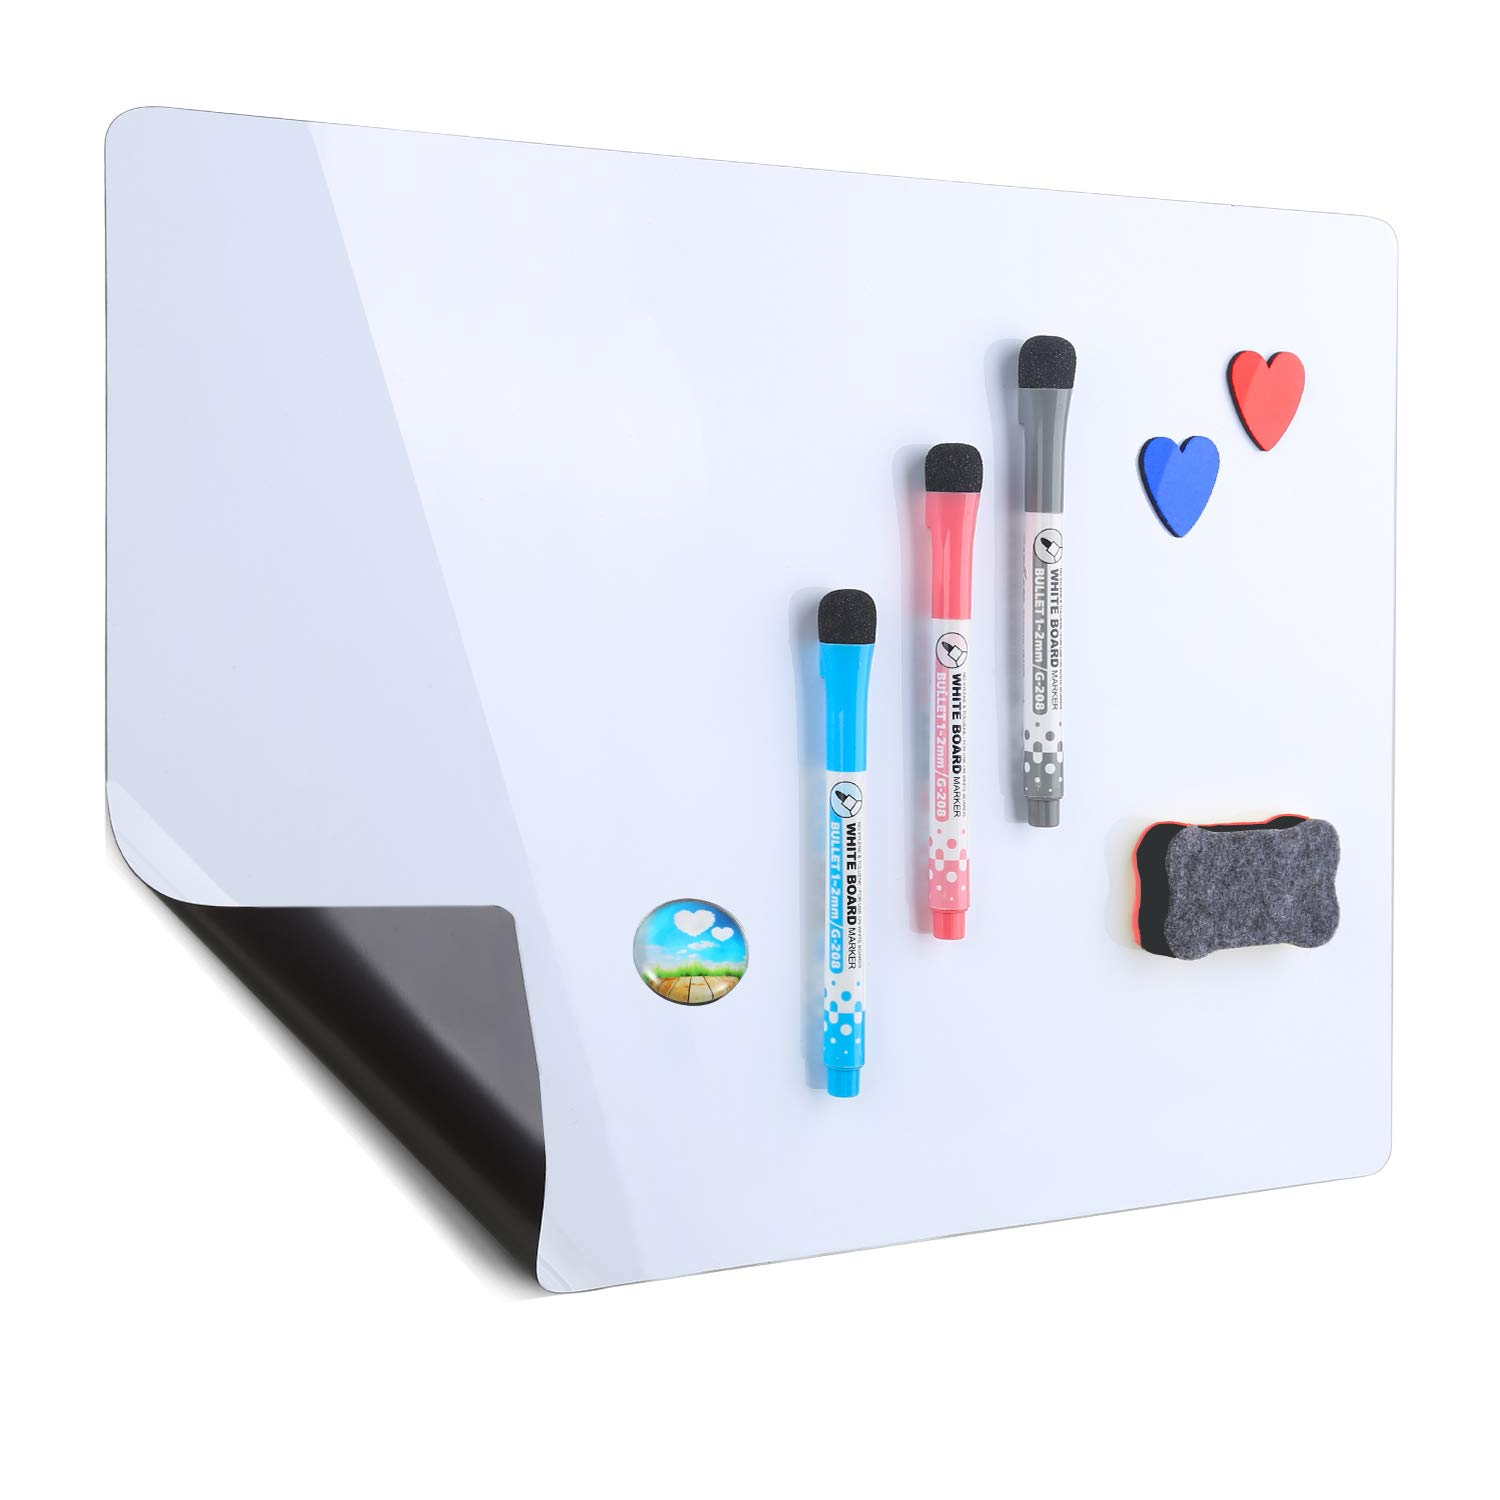 Magnetic Refrigerator Whiteboard 17''x12'',Stain Resistant Technology,Dry Erase Fridge Whiteboard,3 Magnetic Makers, 1 Eraser and 1 Magnetic Button Included